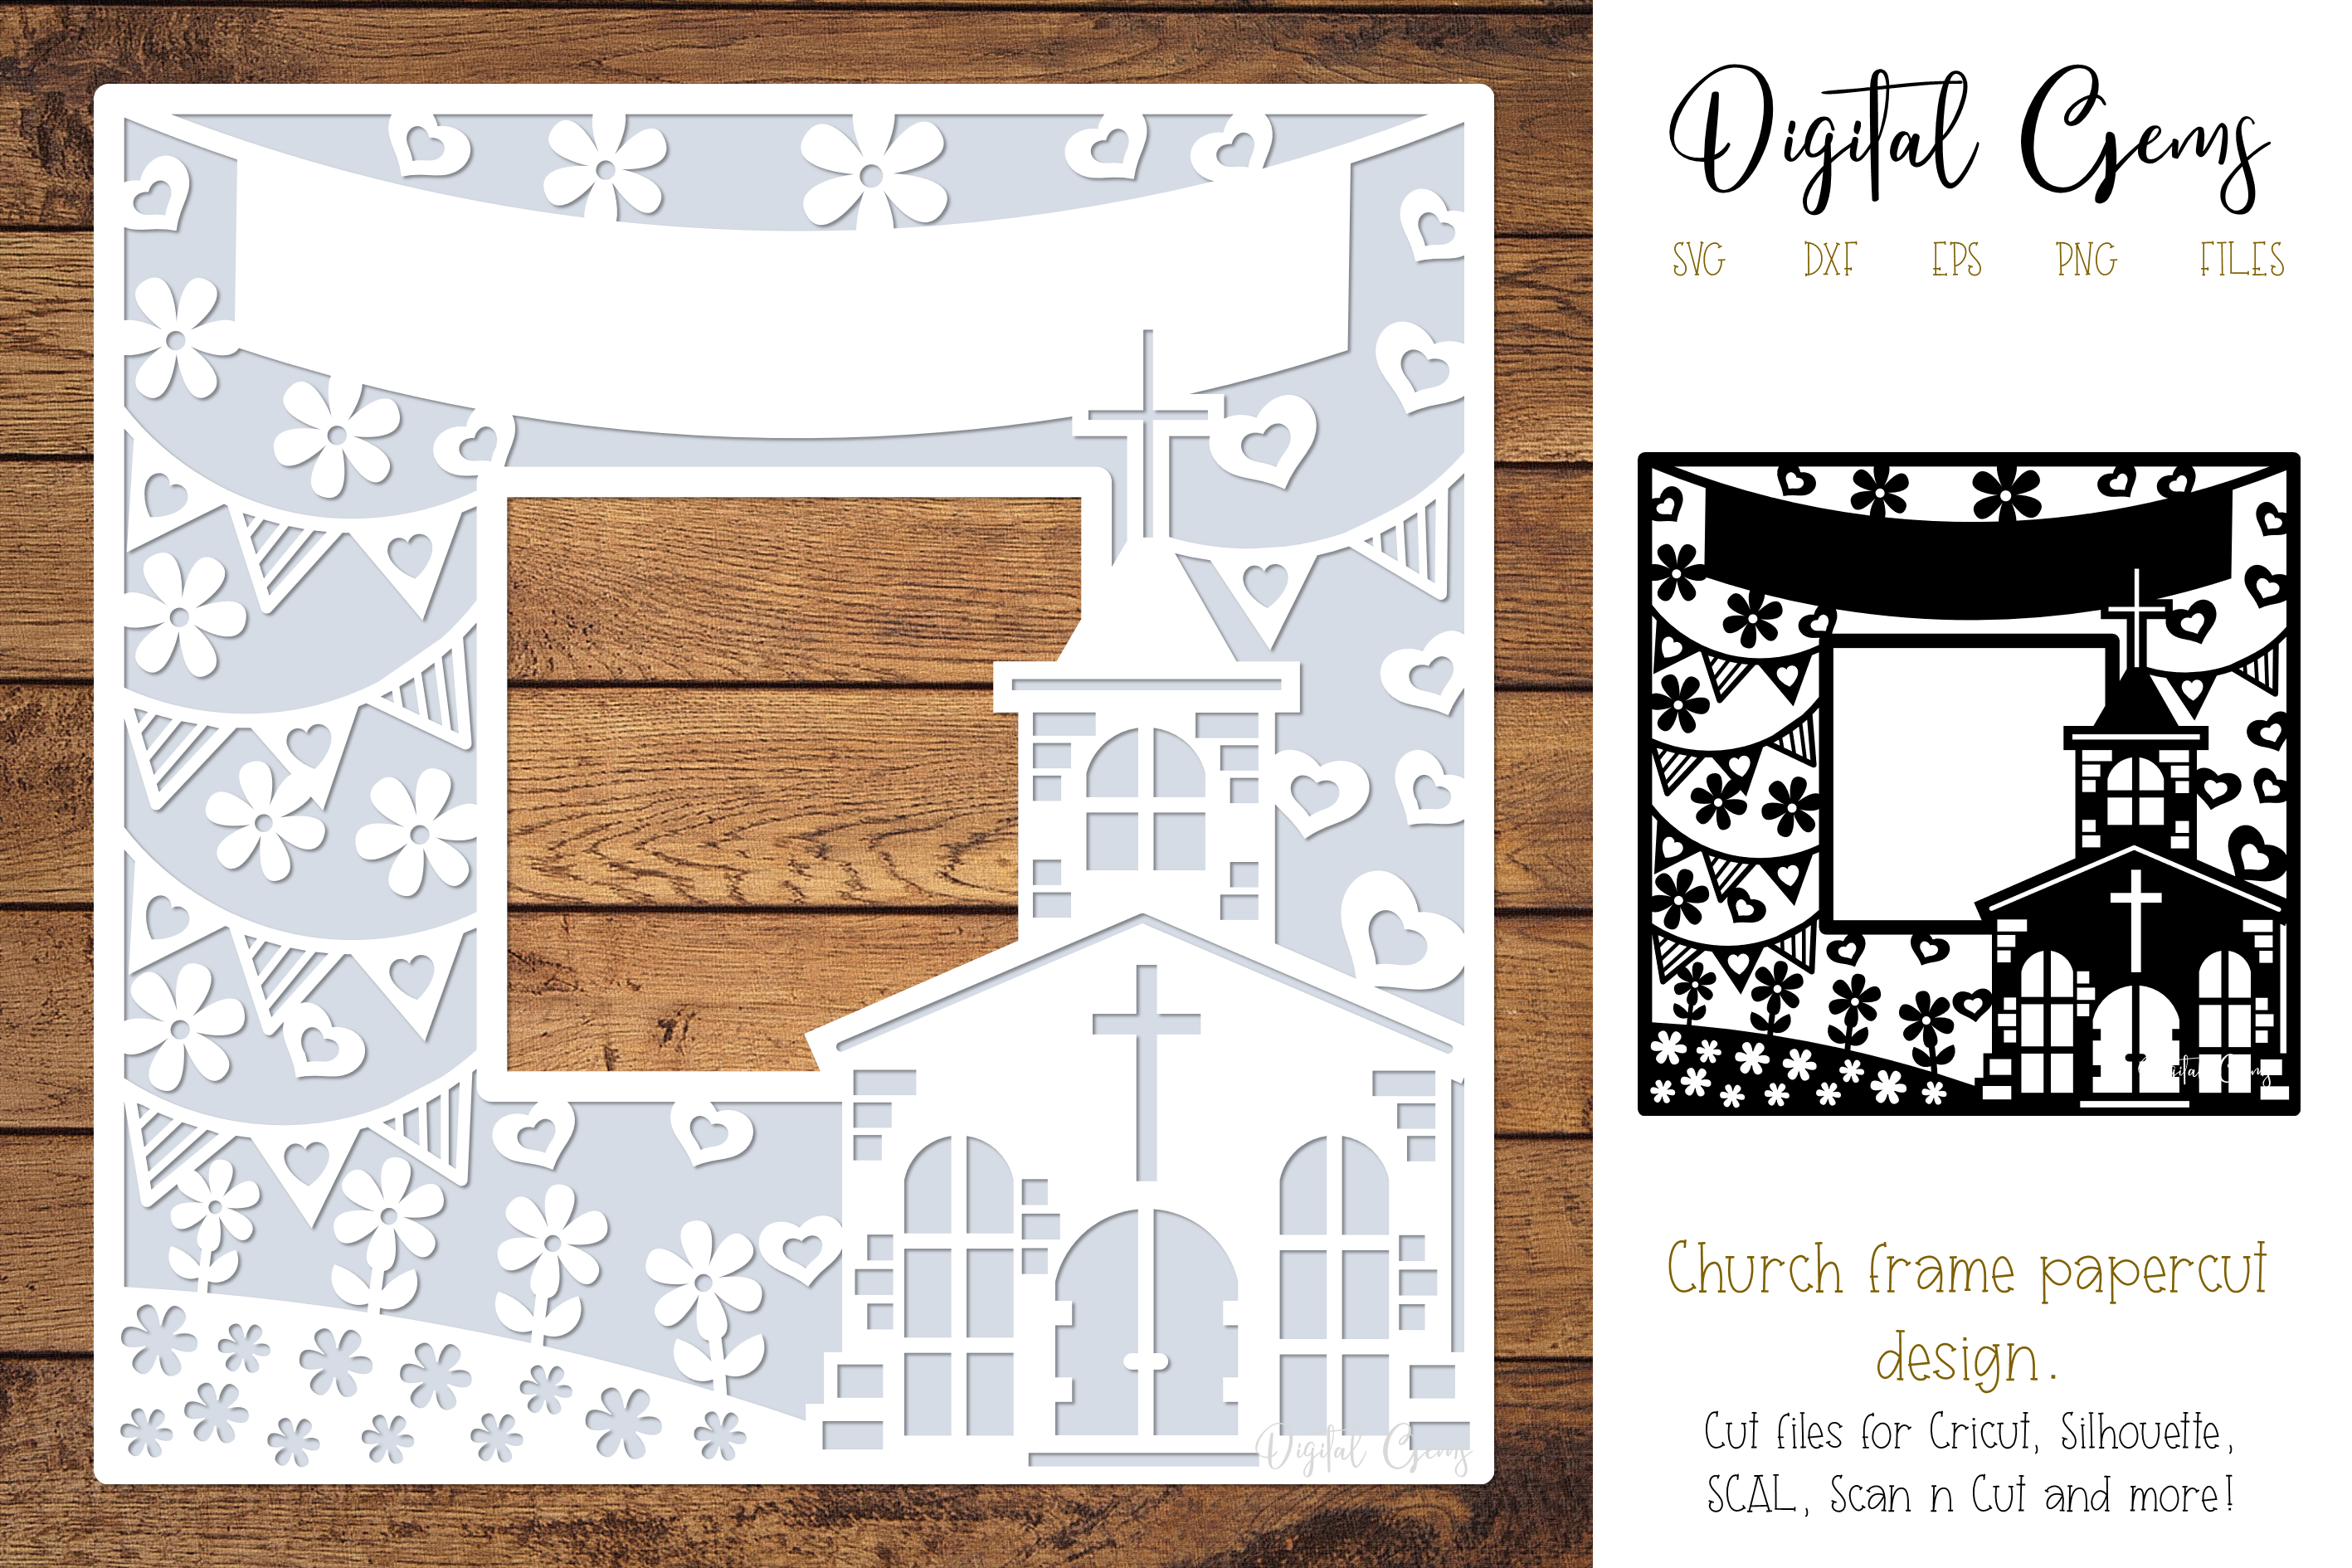 Download Free Church Papercut Design Graphic By Digital Gems Creative Fabrica for Cricut Explore, Silhouette and other cutting machines.